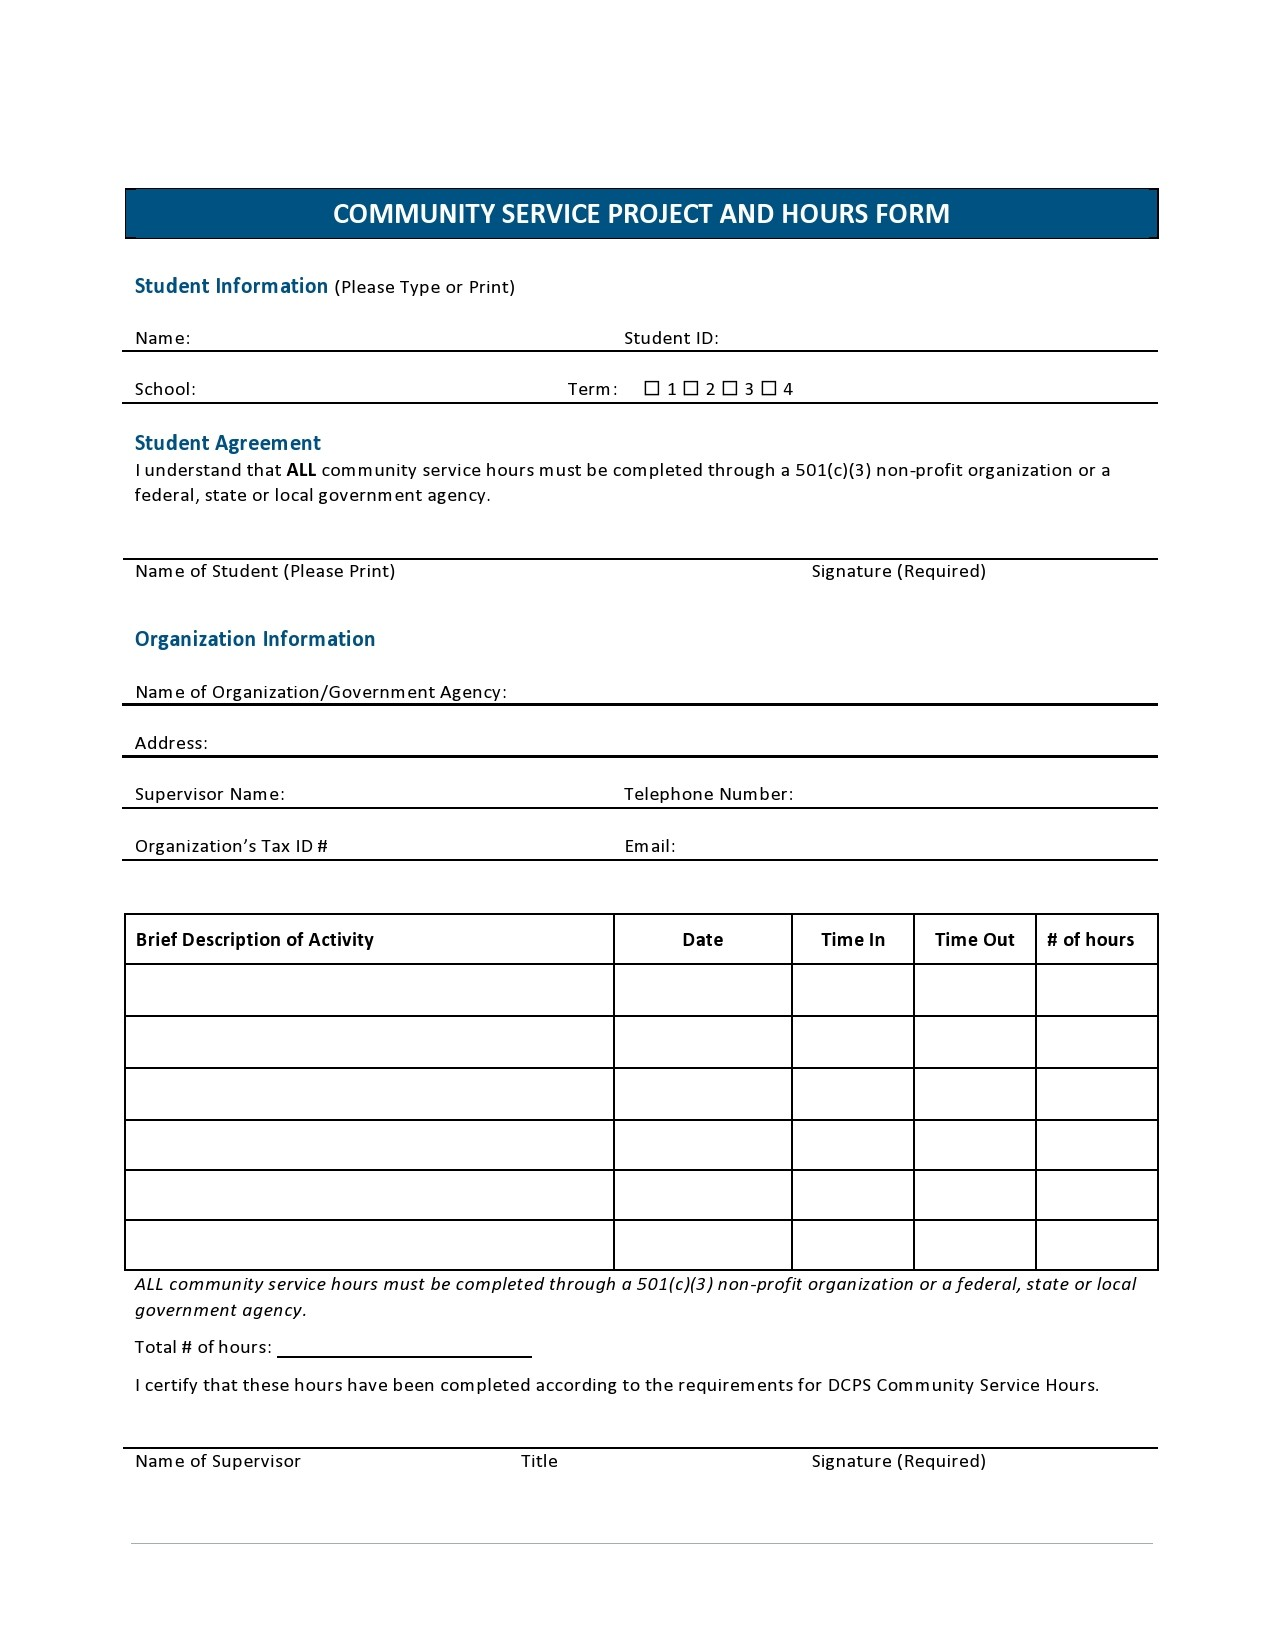 Free community service form 38